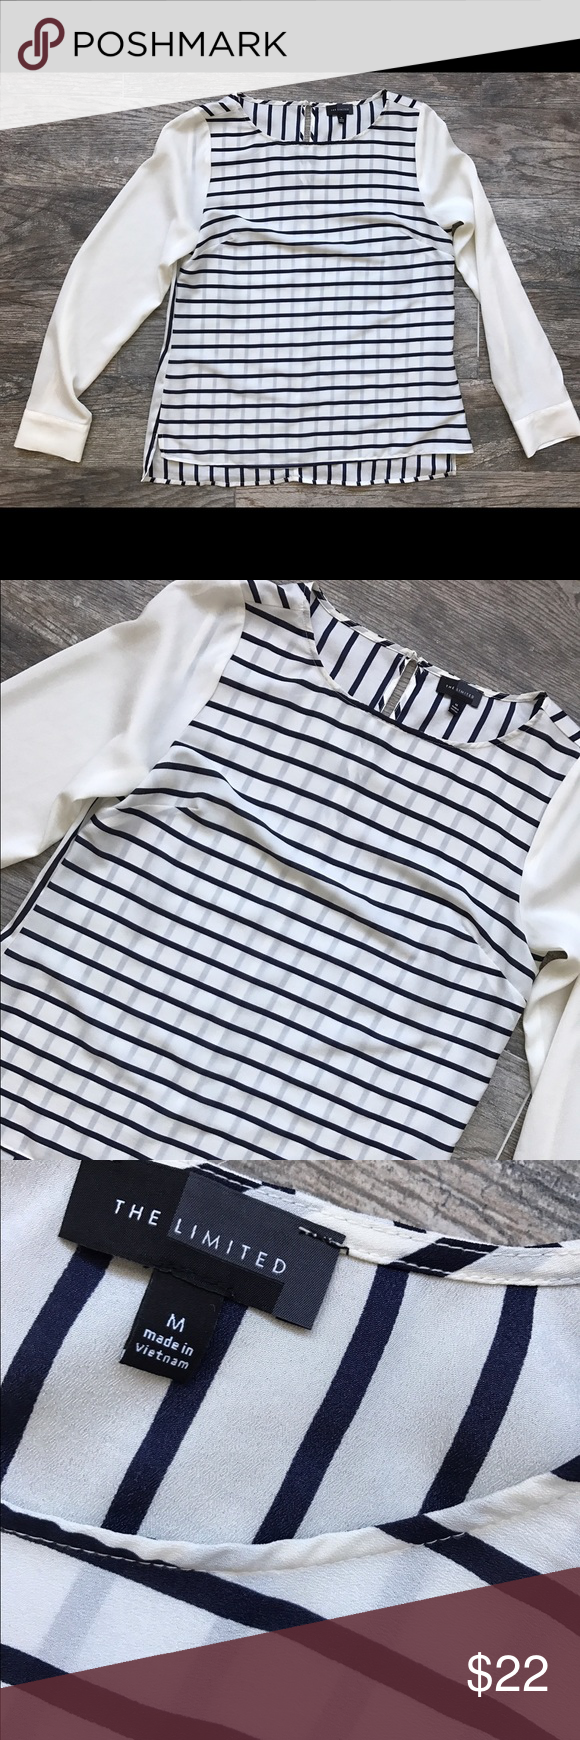 The Limited Striped Sheer Blouse 'The Limited' Striped Sheer Blouse - size Medium. Stripes are navy blue. All REASONABLE offers will be accepted on anything in my closet. The Limited Tops Blouses